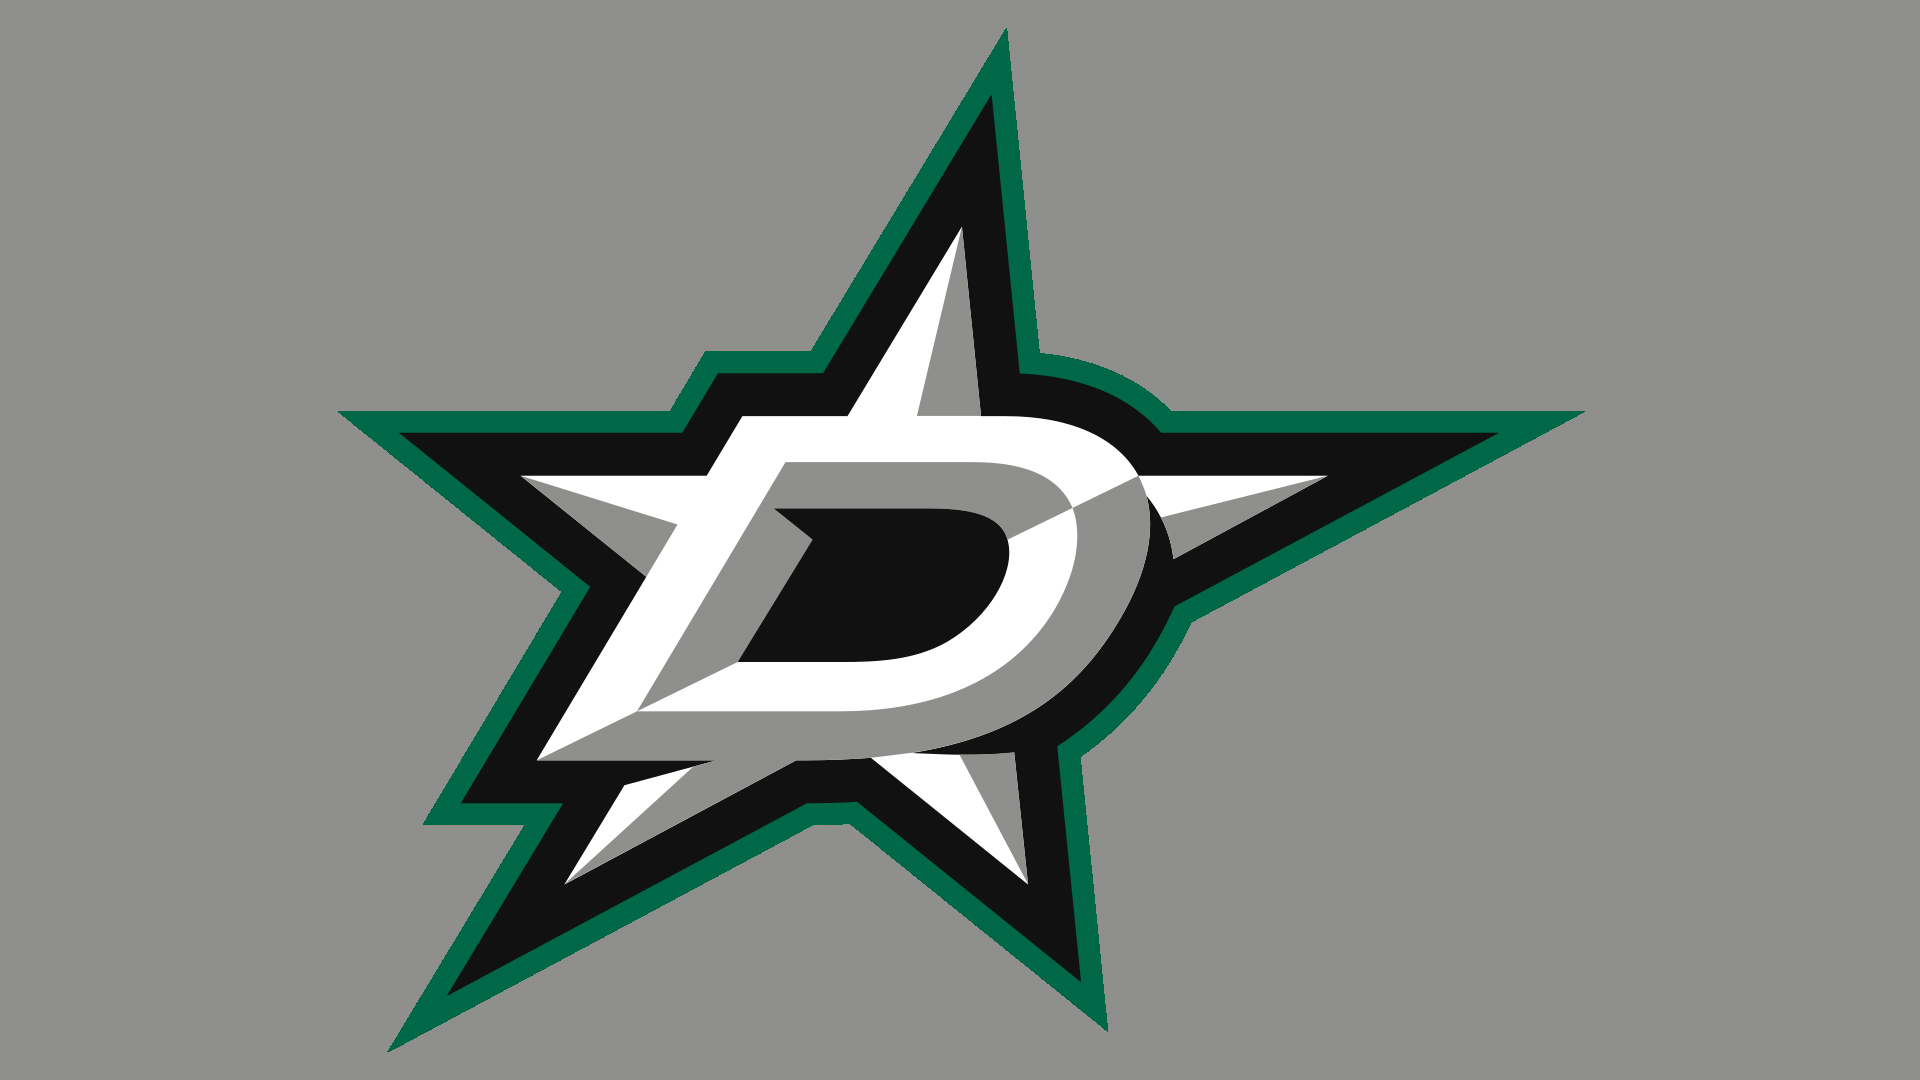 Meaning Dallas Stars logo and symbol.